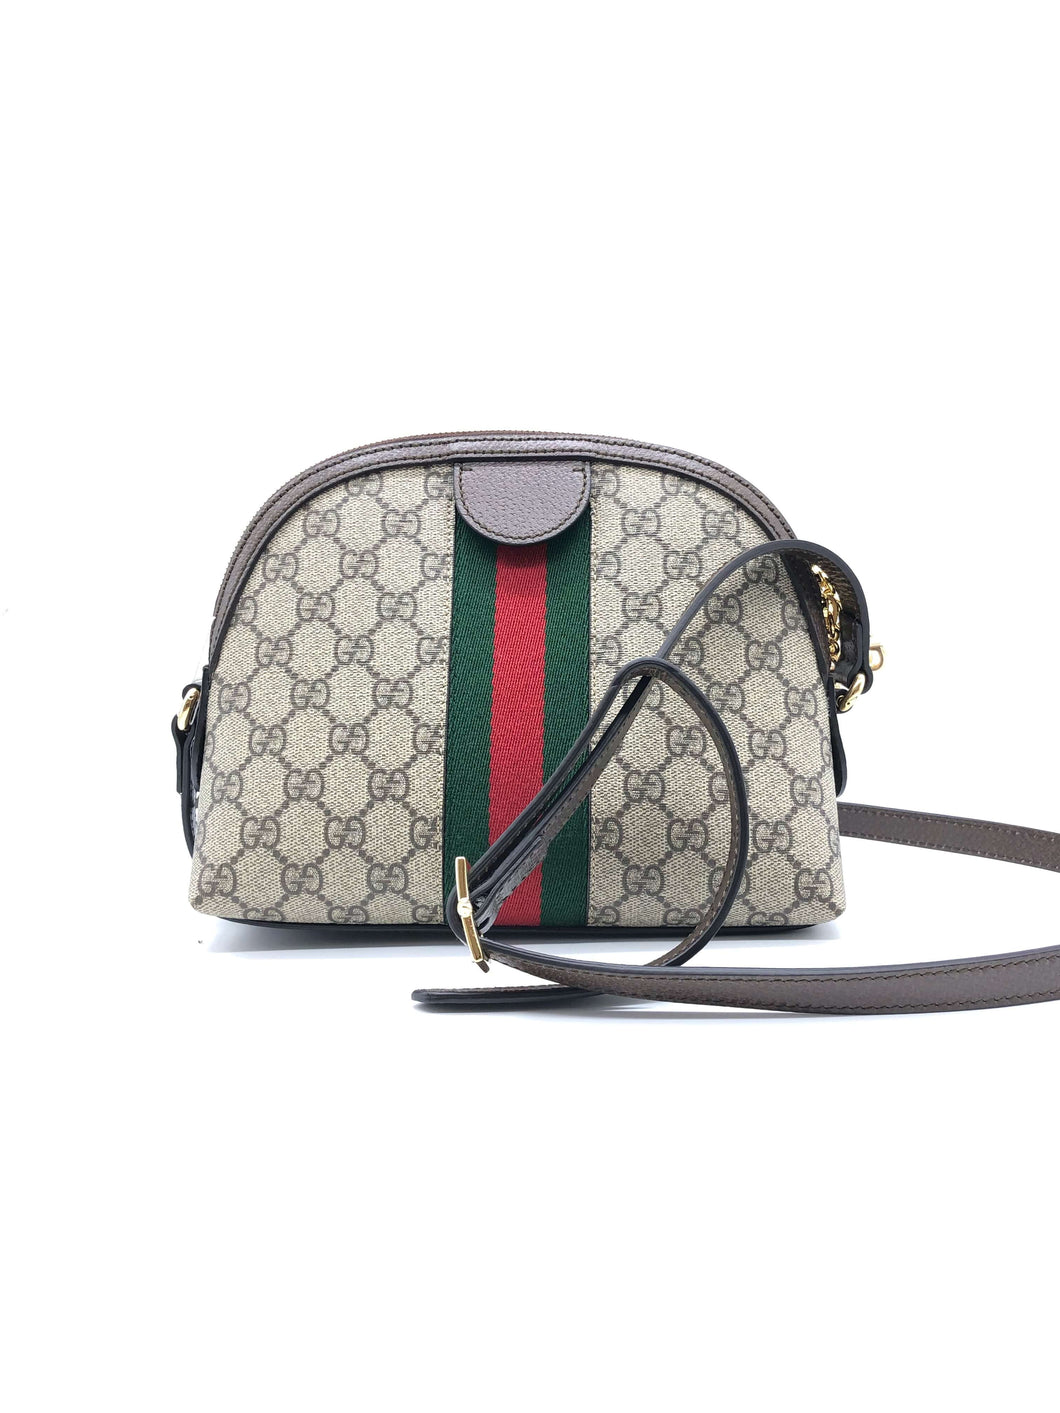 Gucci Small Ophidia GG Shoulder Bag